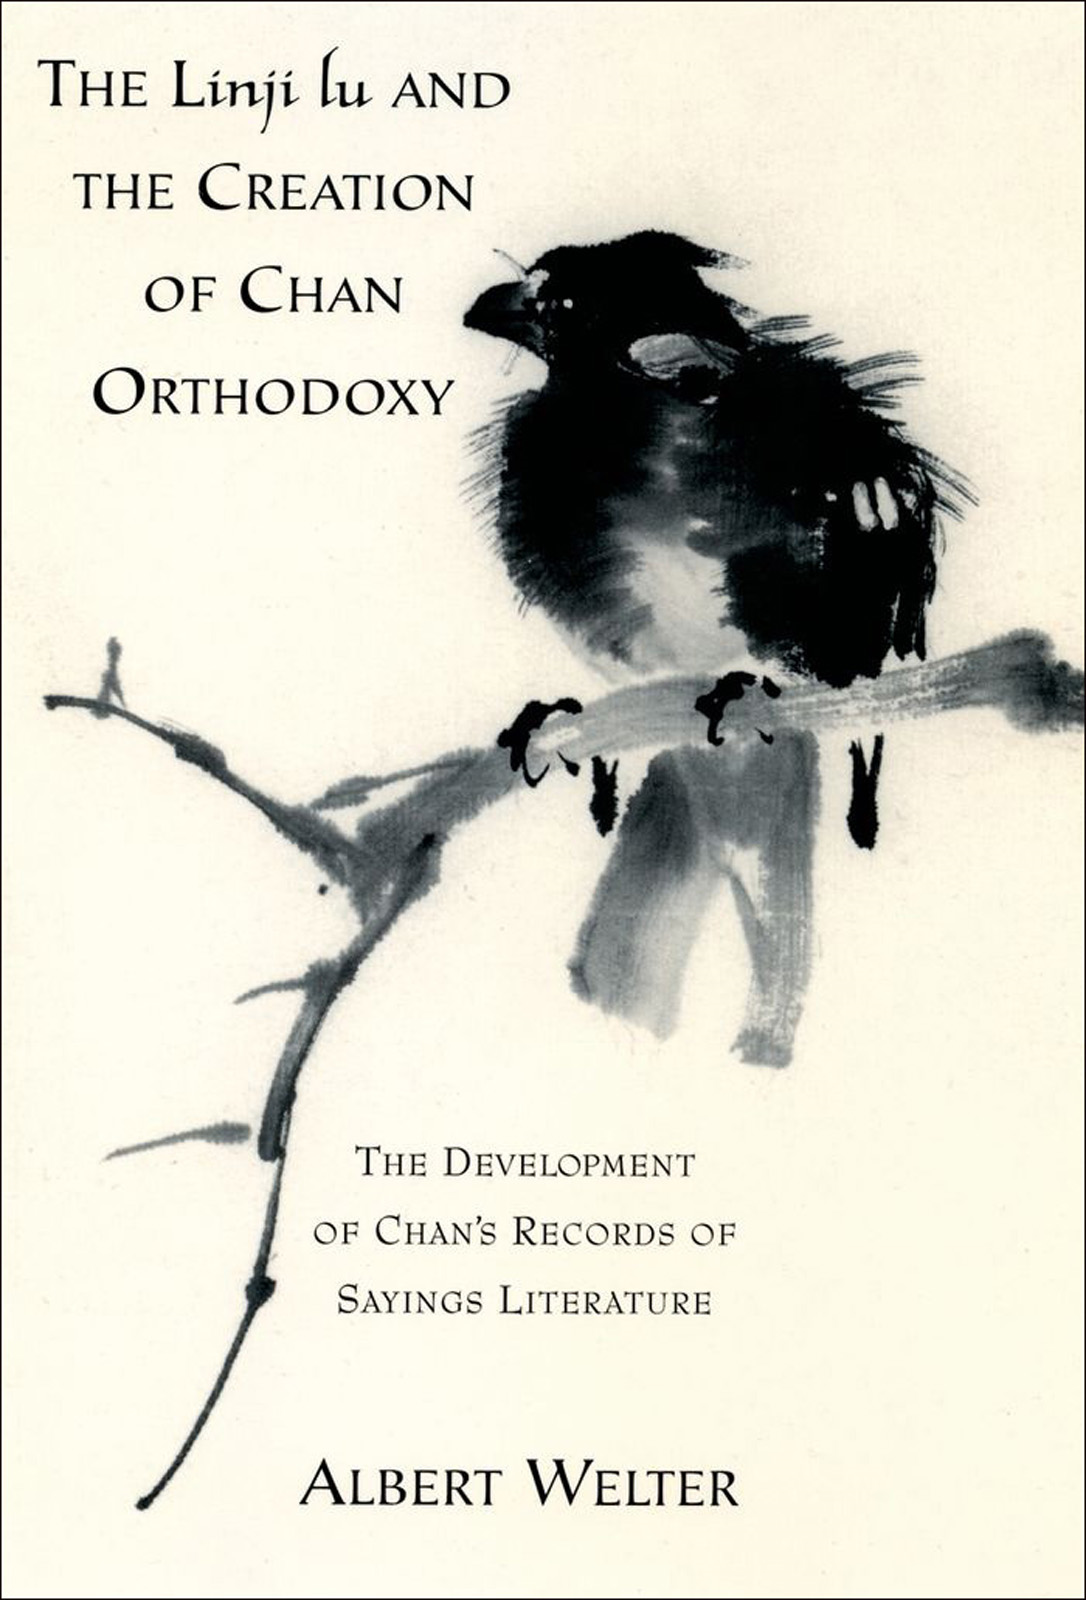 The Linji Lu and the Creation of Chan Orthodoxy: The Development of Chan's Records of Sayings Literature